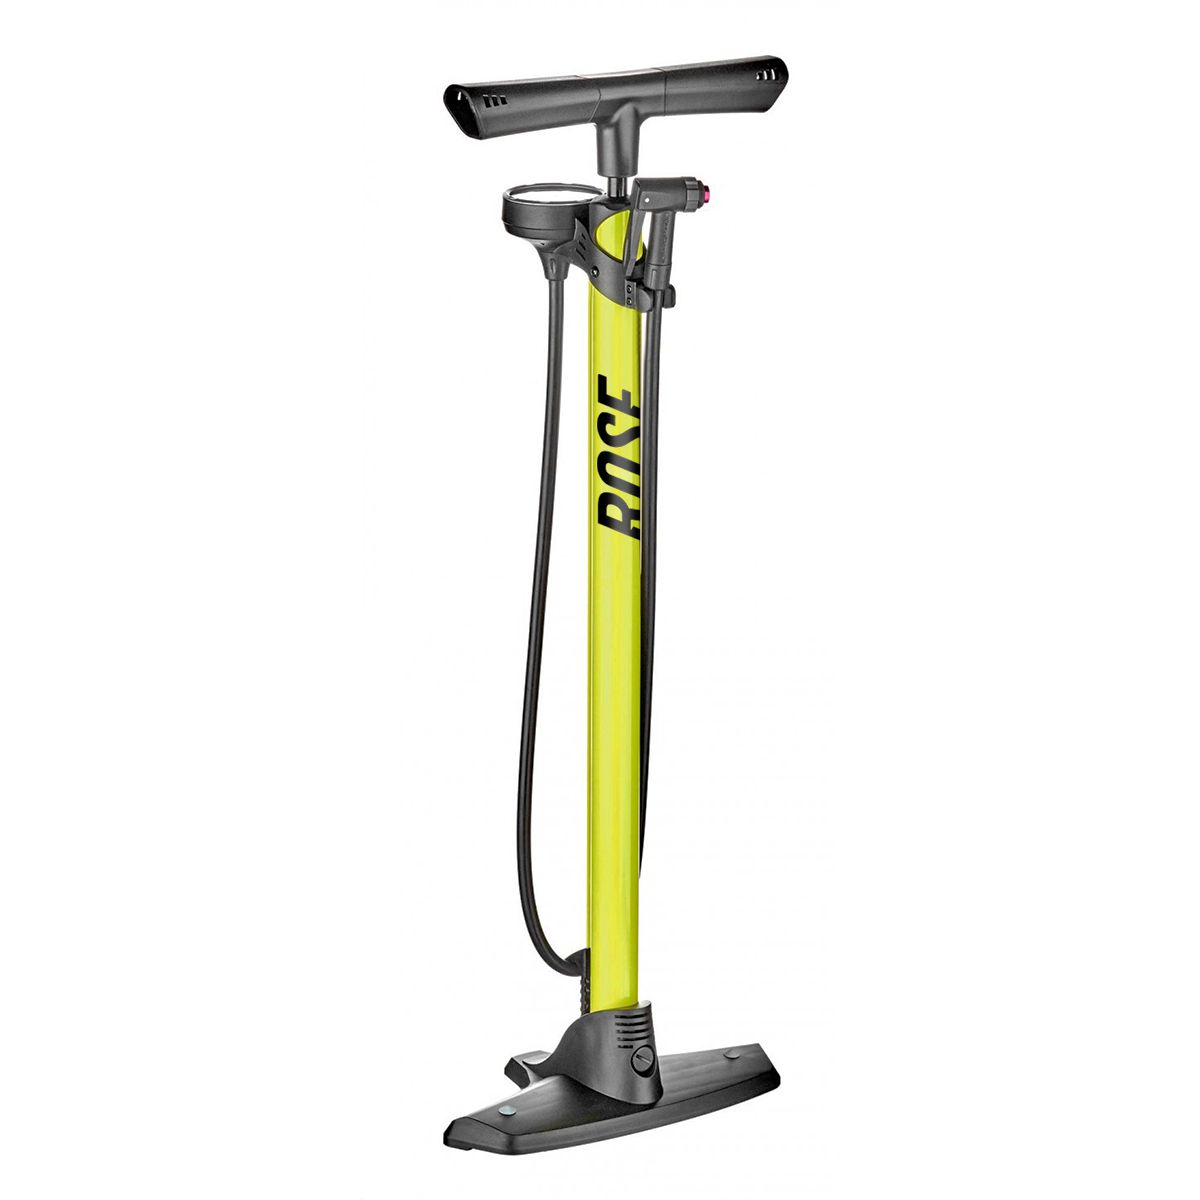 Druckmacher GF-56 floor pump